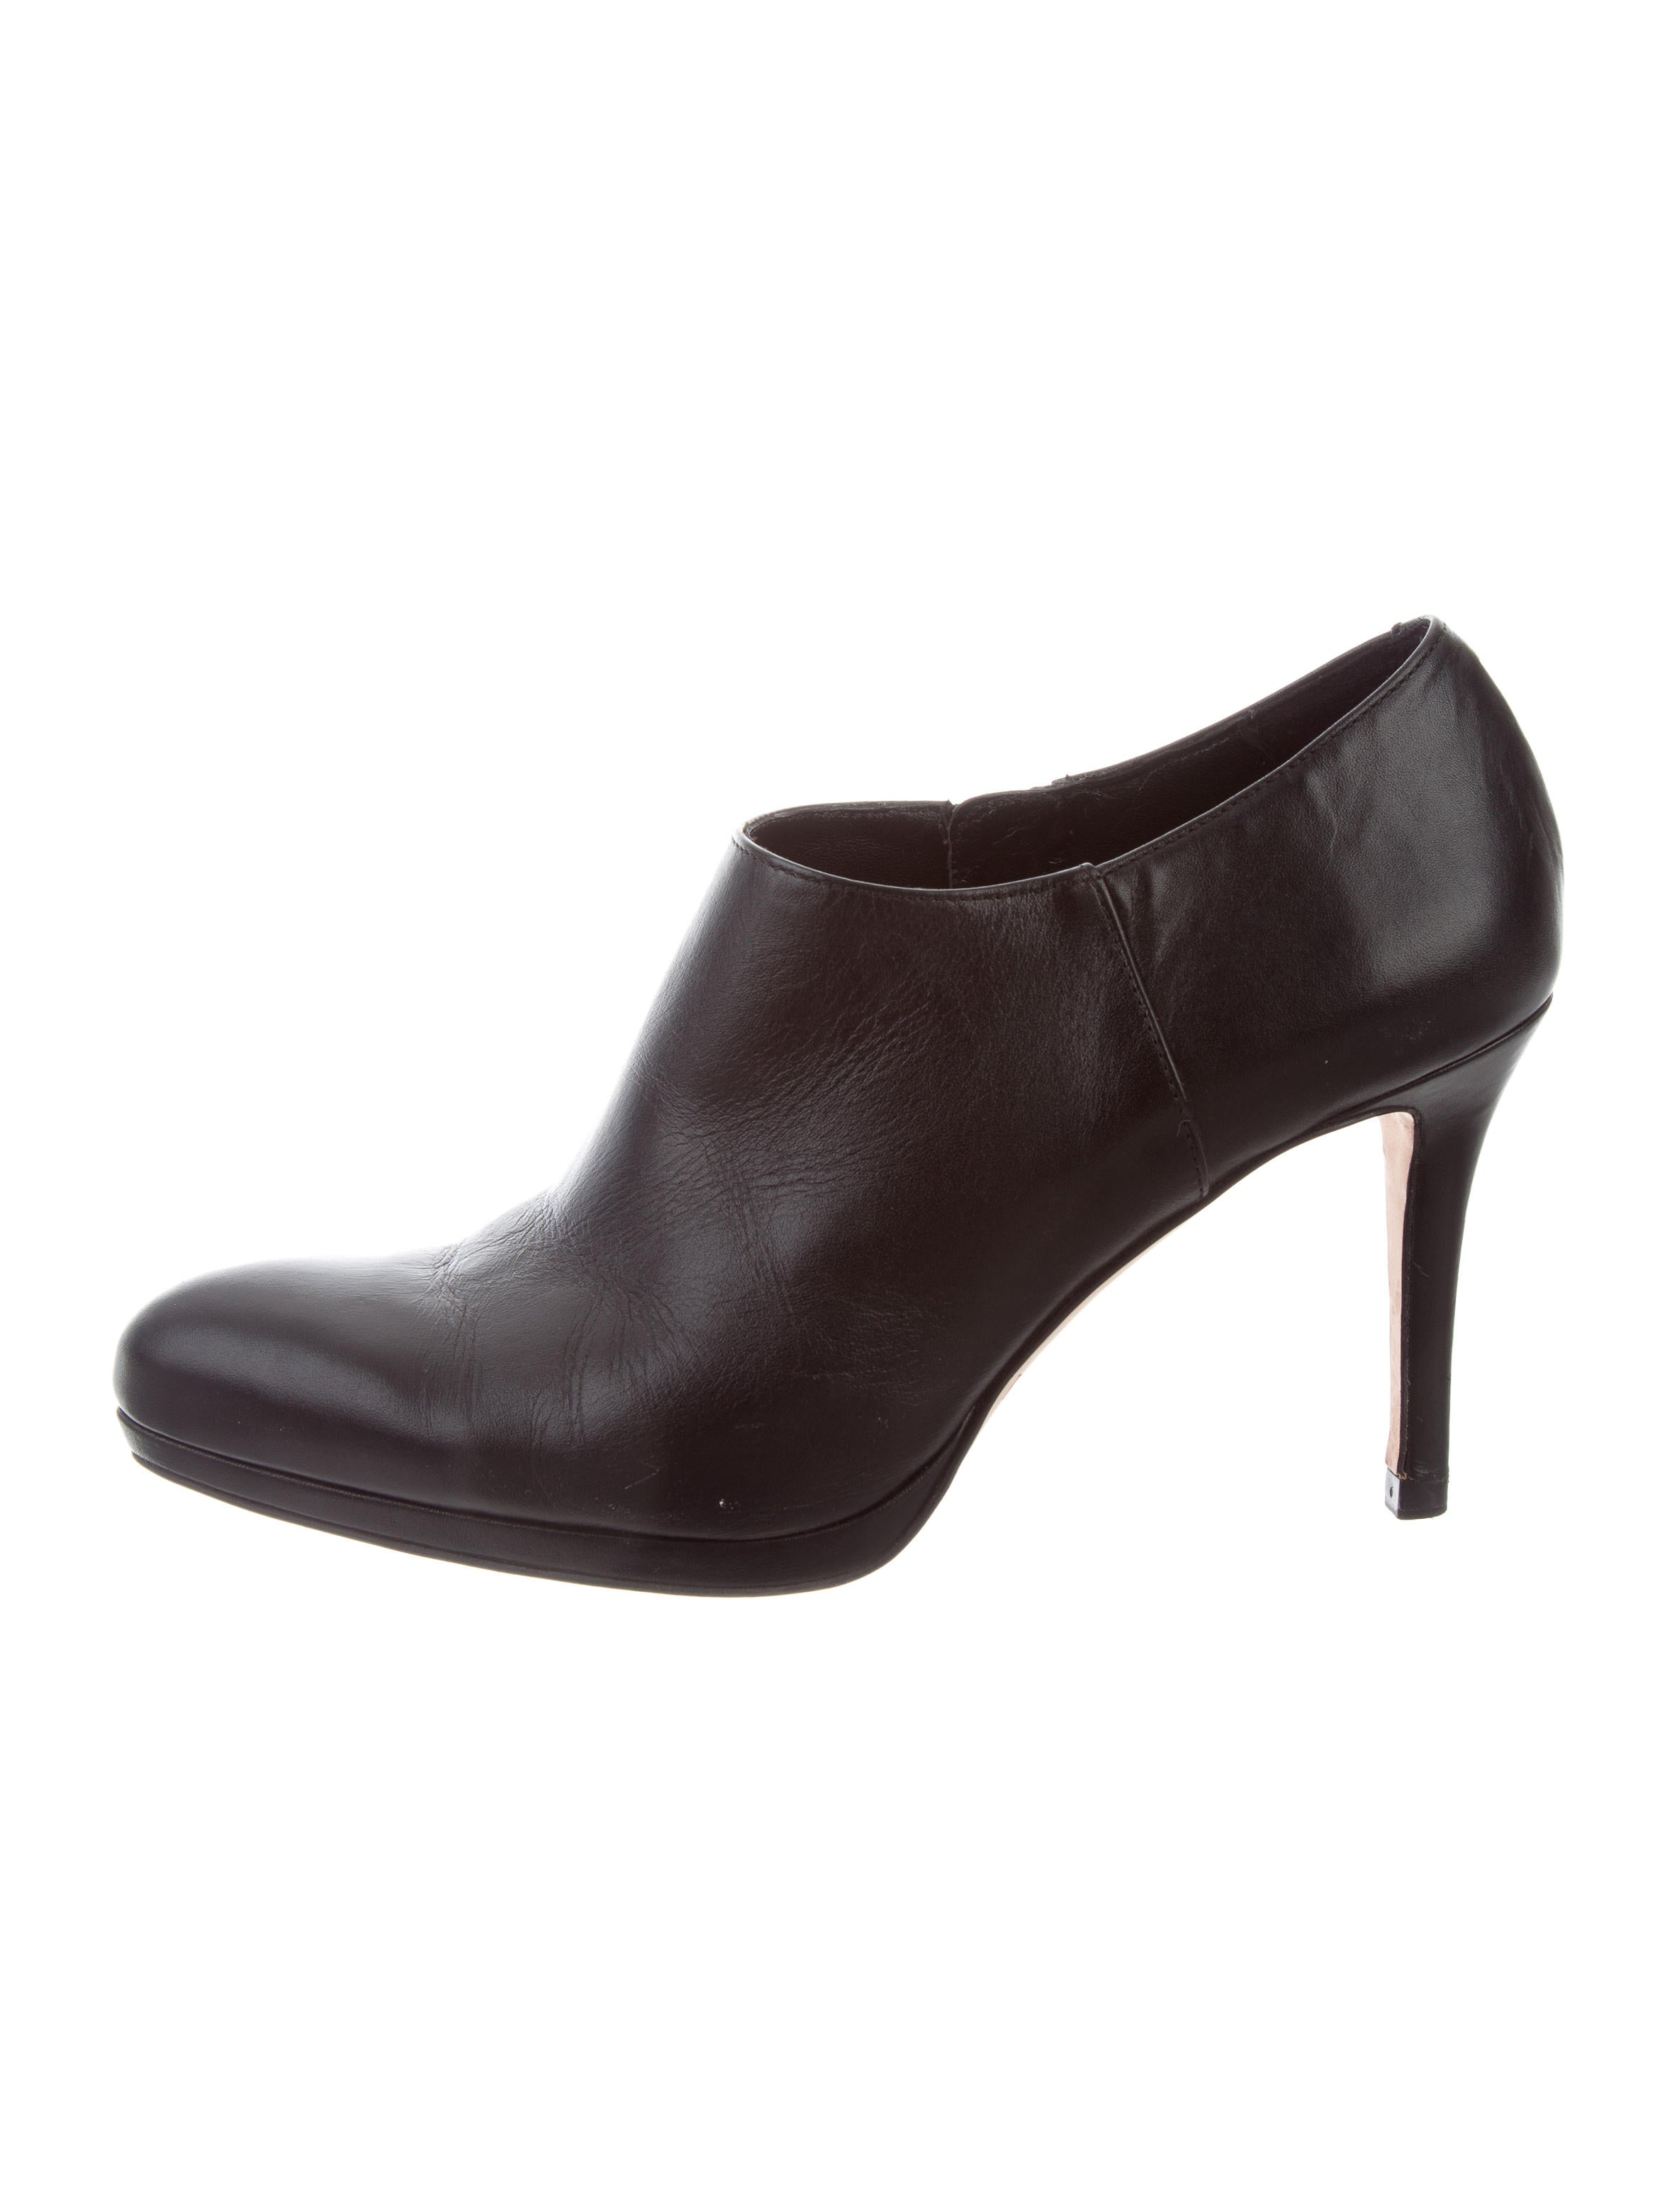 L.K. Bennett Leather Round-Toe Booties cheap price original clearance browse wiki online discount big discount hJ32MtIUD1